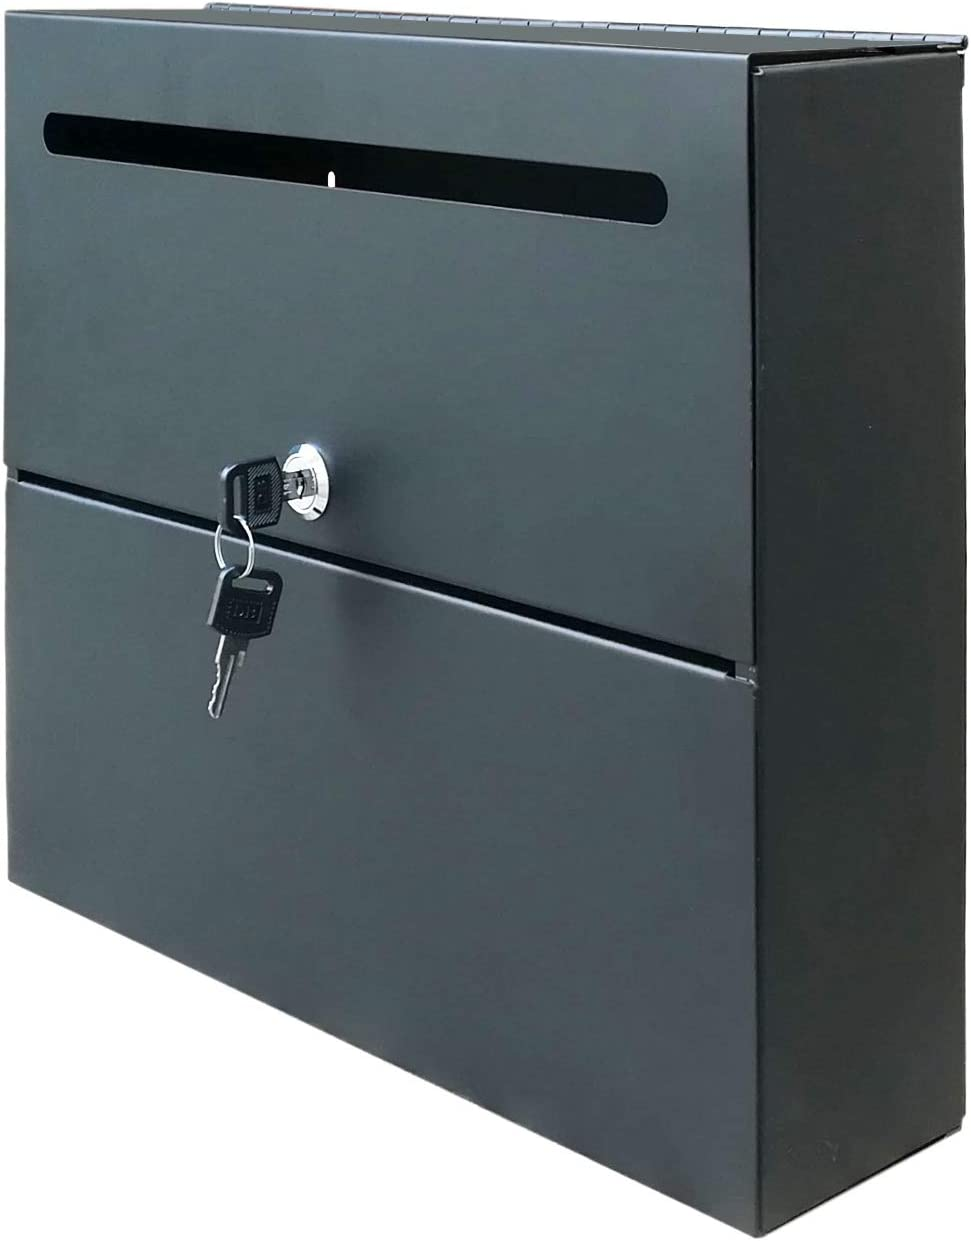 FixtureDisplays Wall-Mountable Locking Inter-Office Mail Suggestion Collection Box 15133